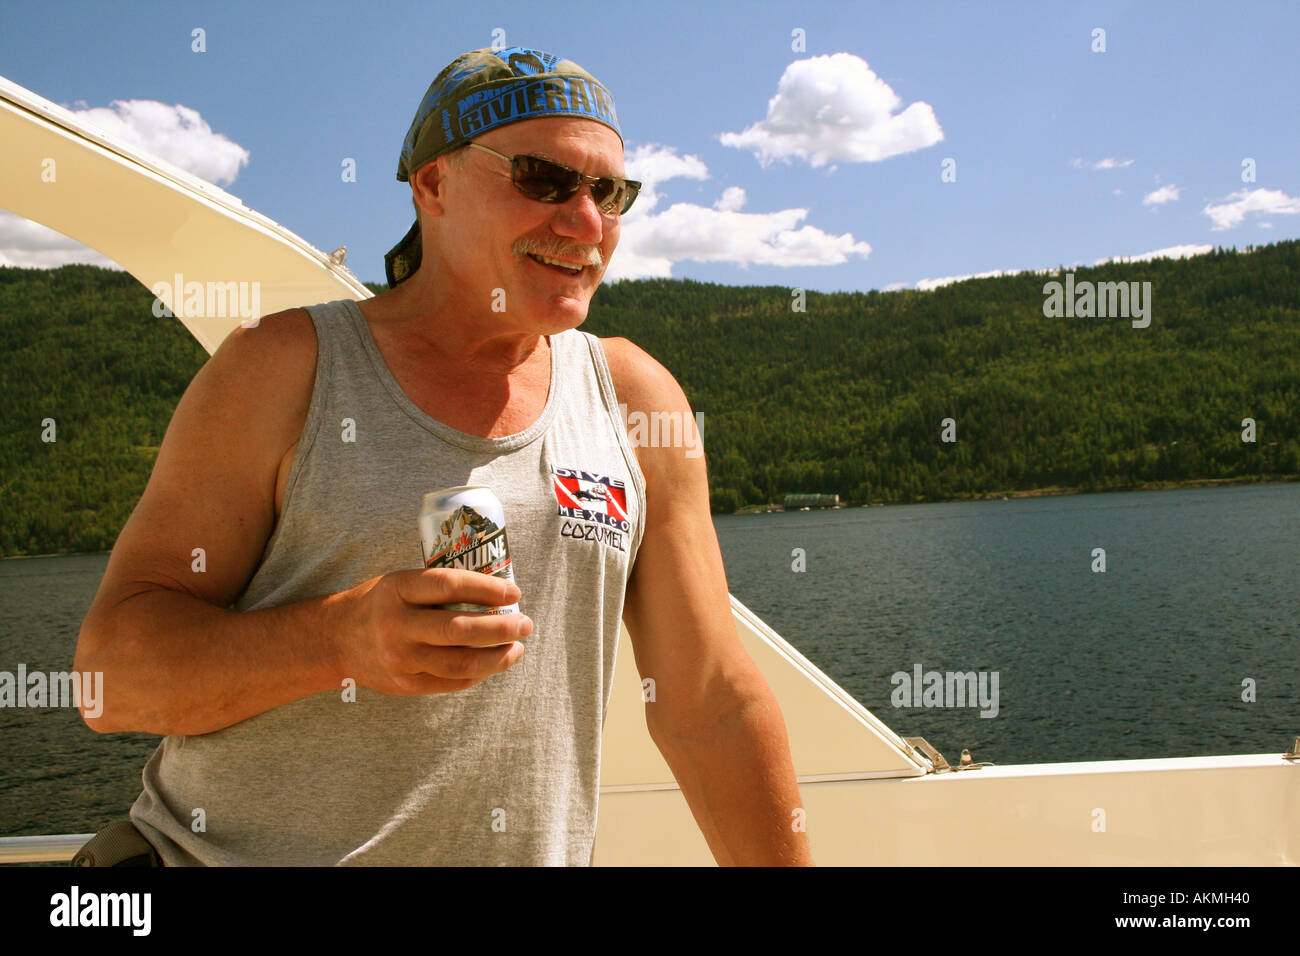 Play Hard drining beer  on a holiday boat cruise - Stock Image